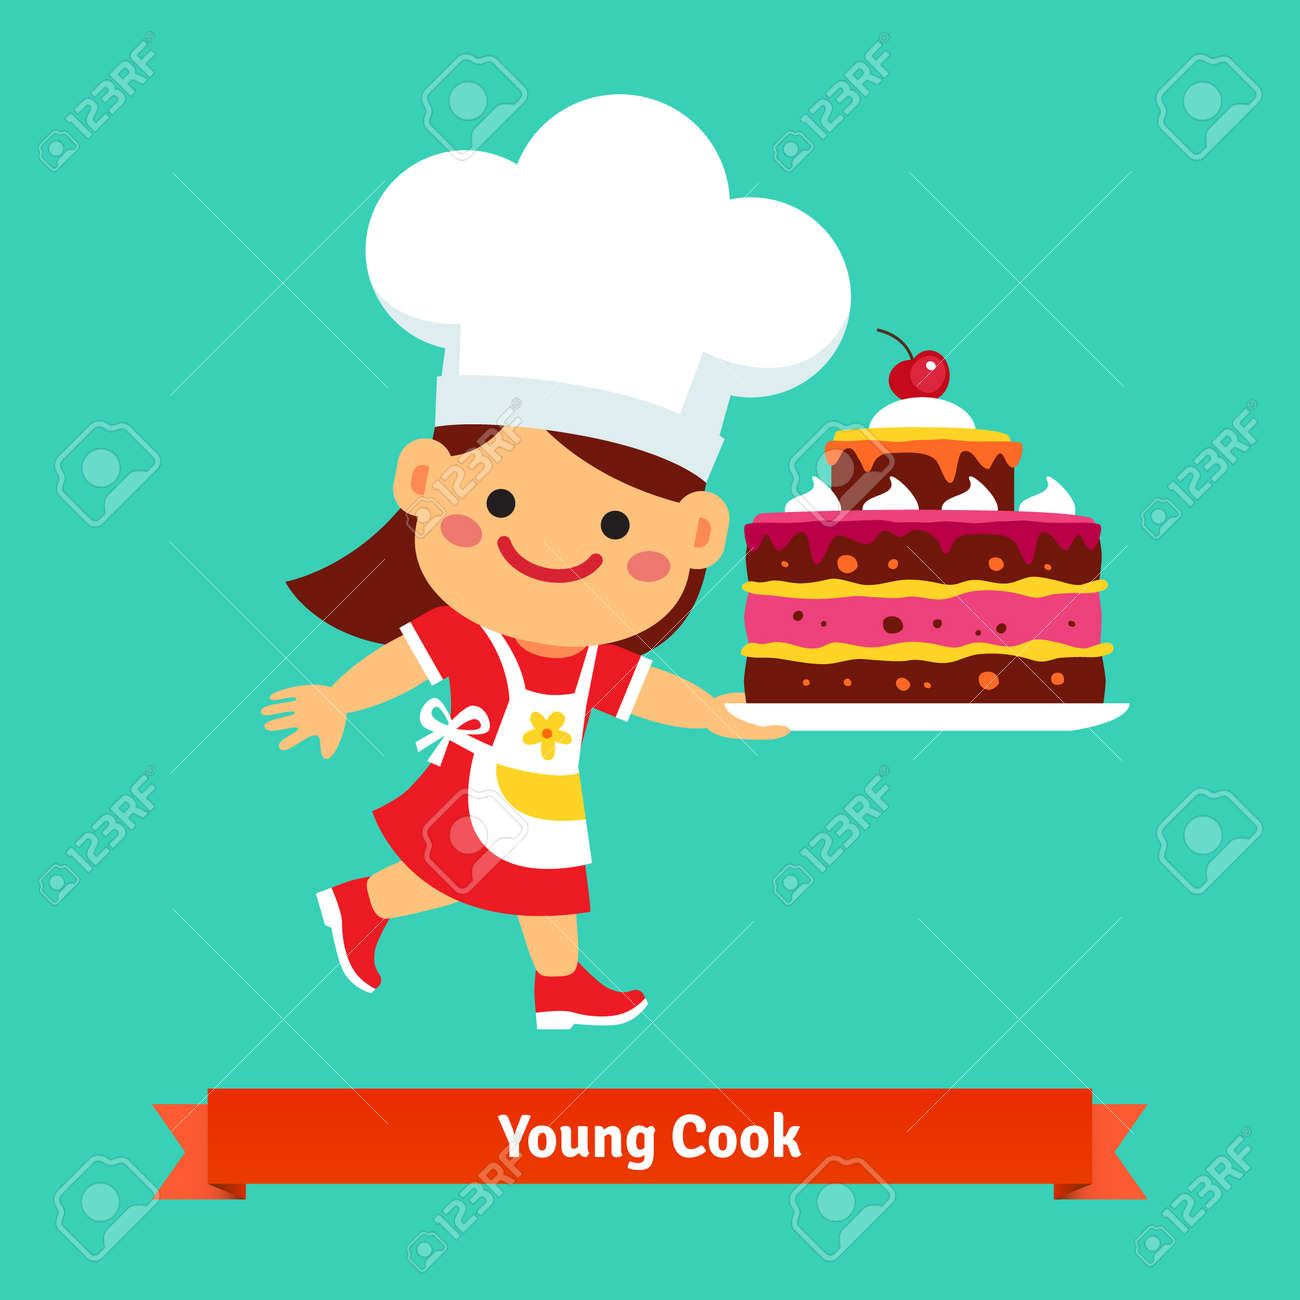 Smiling Girl Cook In Chefs Hat Holding A Big Birthday Cherry Cake That She Cooked Herself